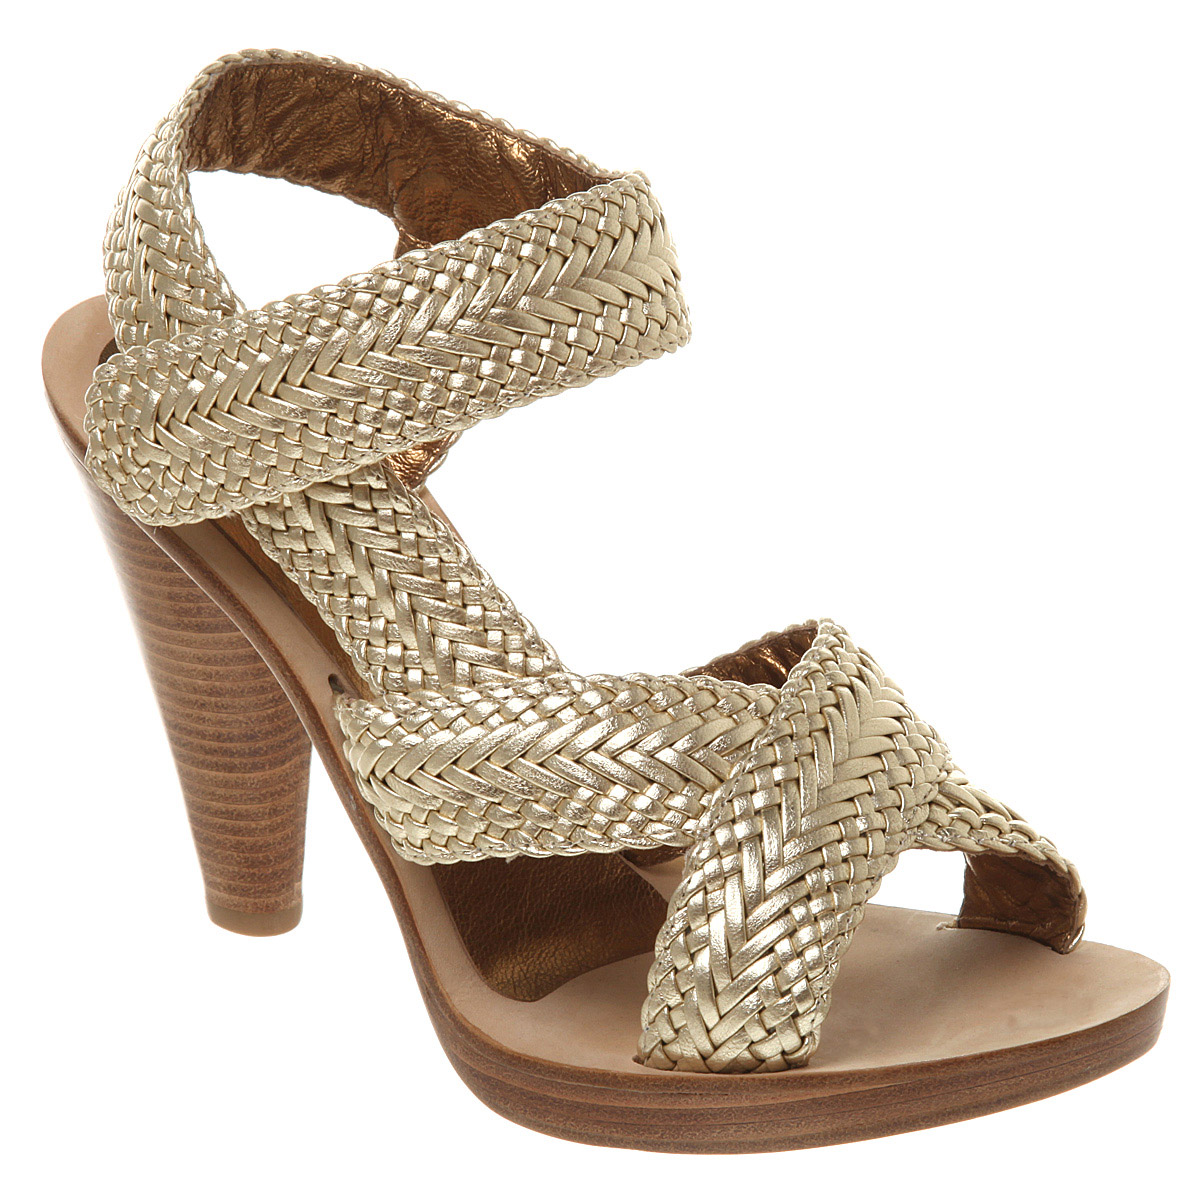 Womens-Cynthia-Vincent-Brady-Platform-Sandal-Gold-Leath